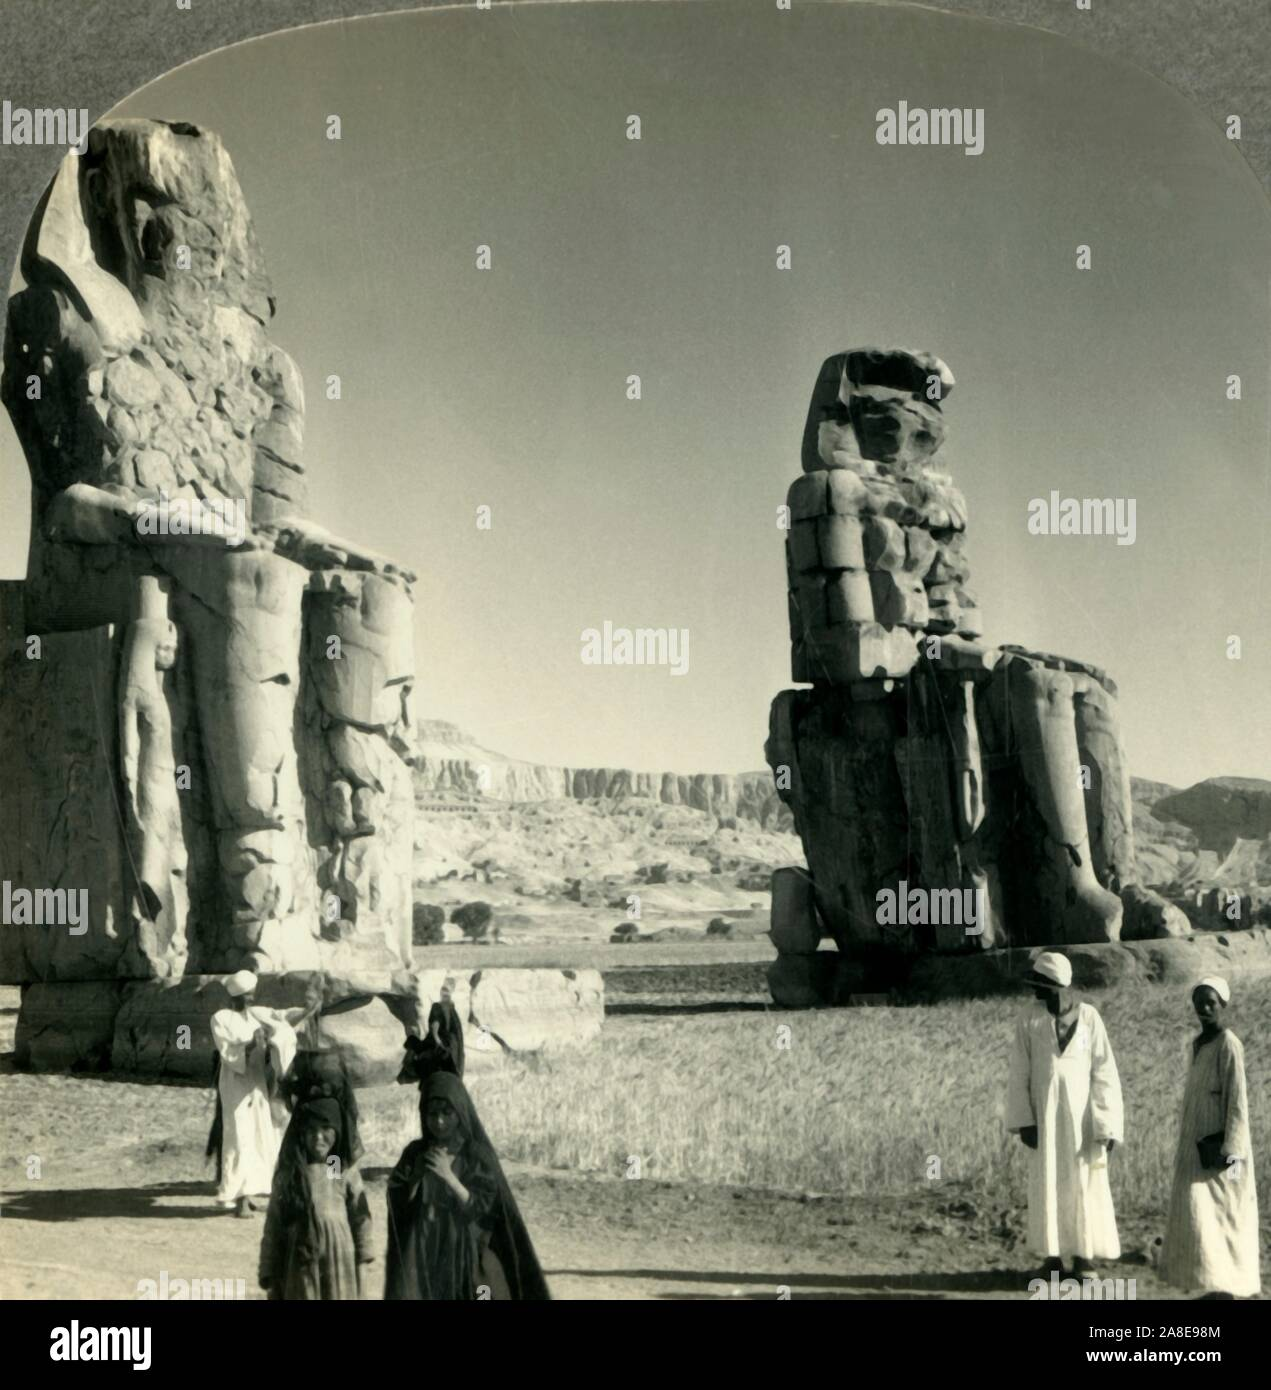 """'Colossal """"Memnon"""" Statues at Thebes - the Farther One Used to Emit a Cry at Sunrise, Egypt', c1930s. Colossi of Memnon,  statues of the Pharaoh Amenhotep III, who reigned Egypt during the Dynasty XVIII. From """"Tour of the World"""". [Keystone View Company, Meadville, Pa., New York, Chicago, London] Stock Photo"""